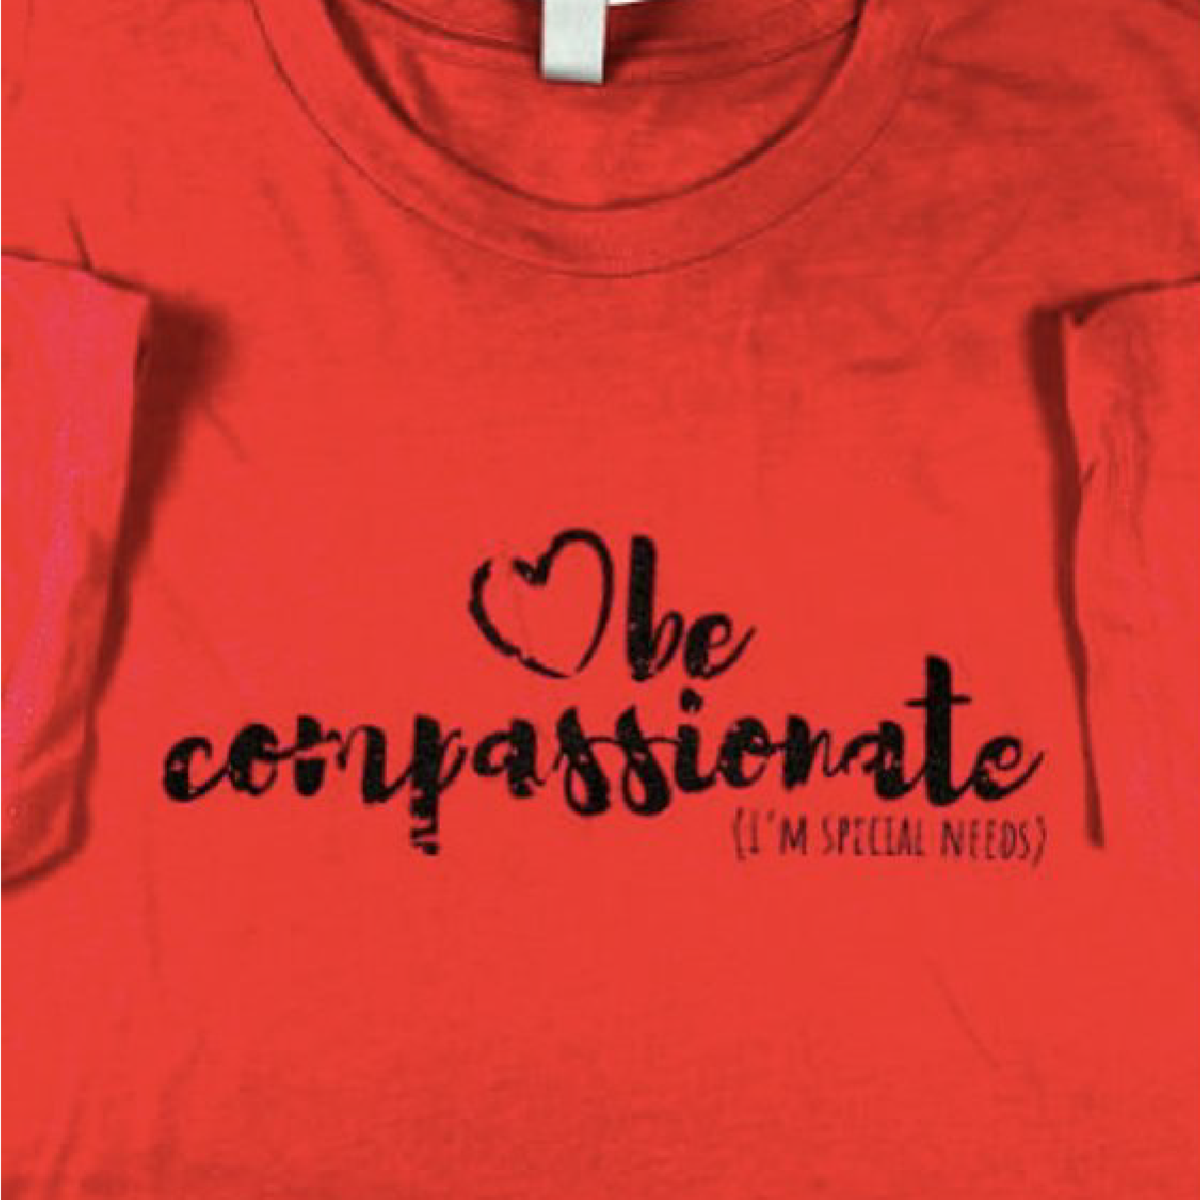 be-compassionate-im-special-needs-01_1200x1200